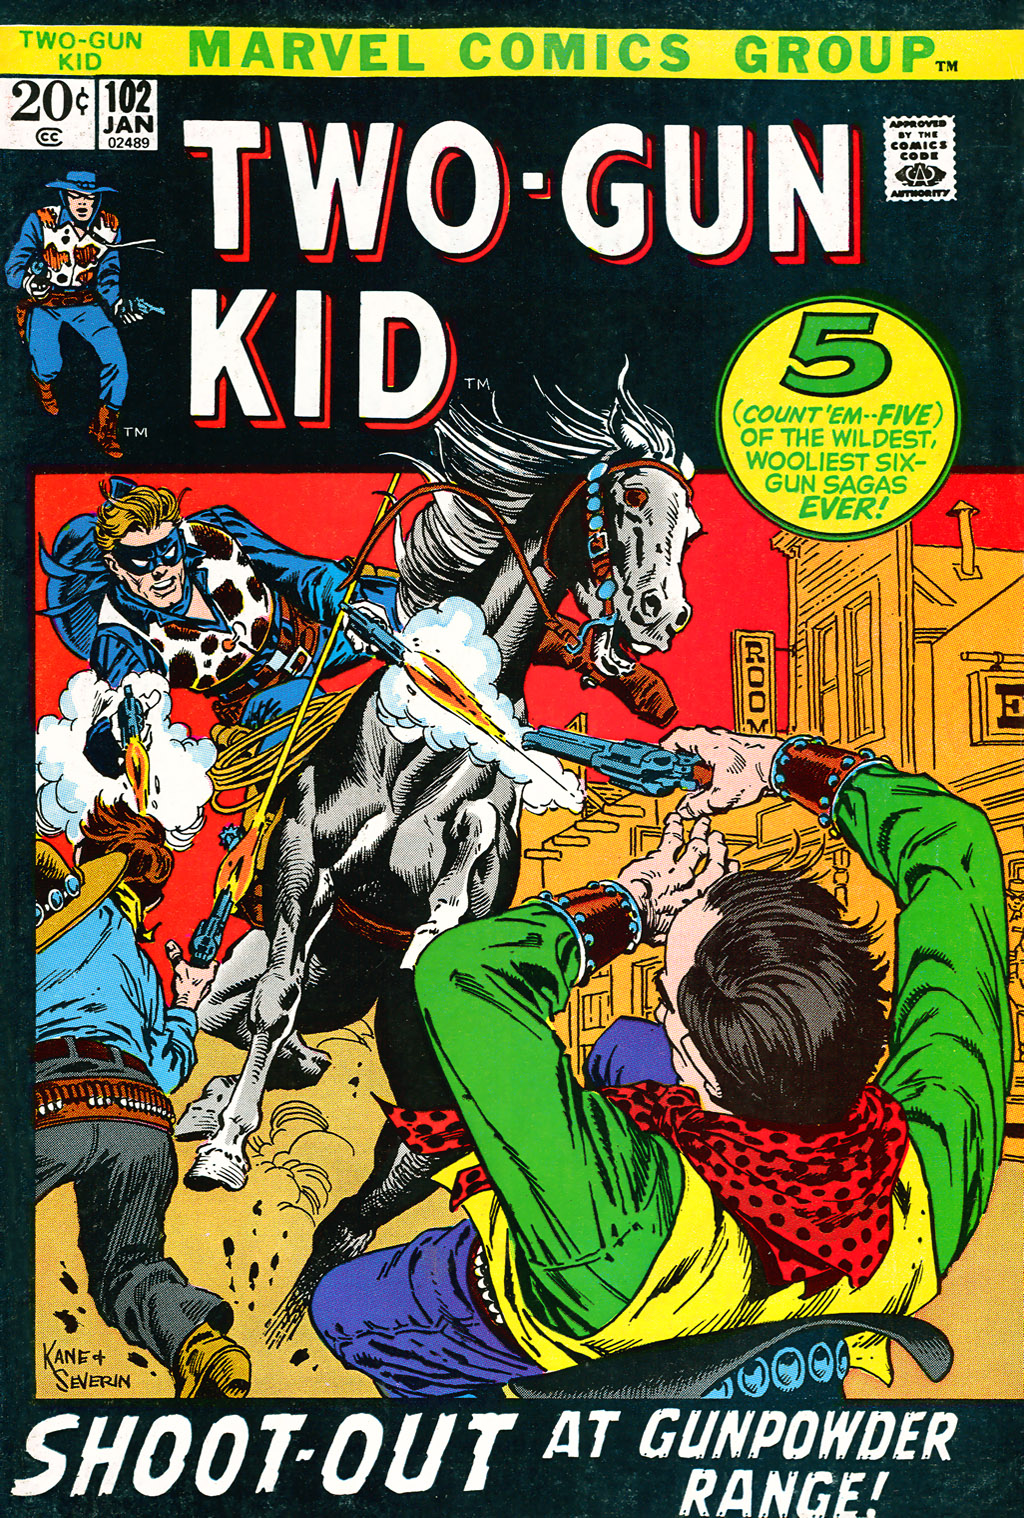 Read online Two-Gun Kid comic -  Issue #102 - 1